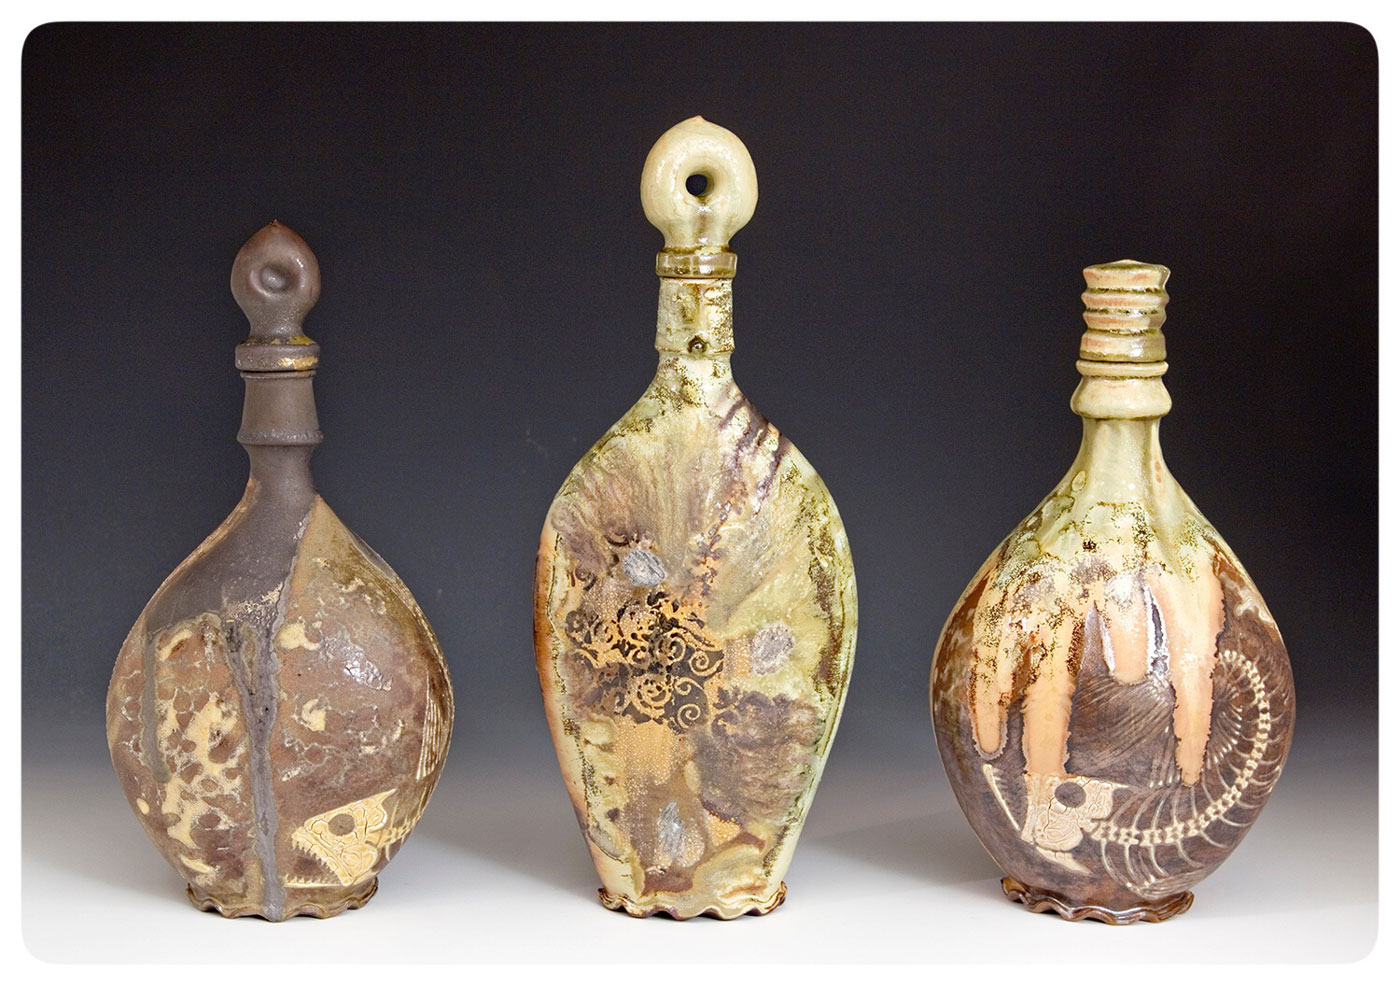 three Crystalline Flasks with cork and Finial, Bruce Gholson, Bulldog POttery, Seagrove, North Carolina